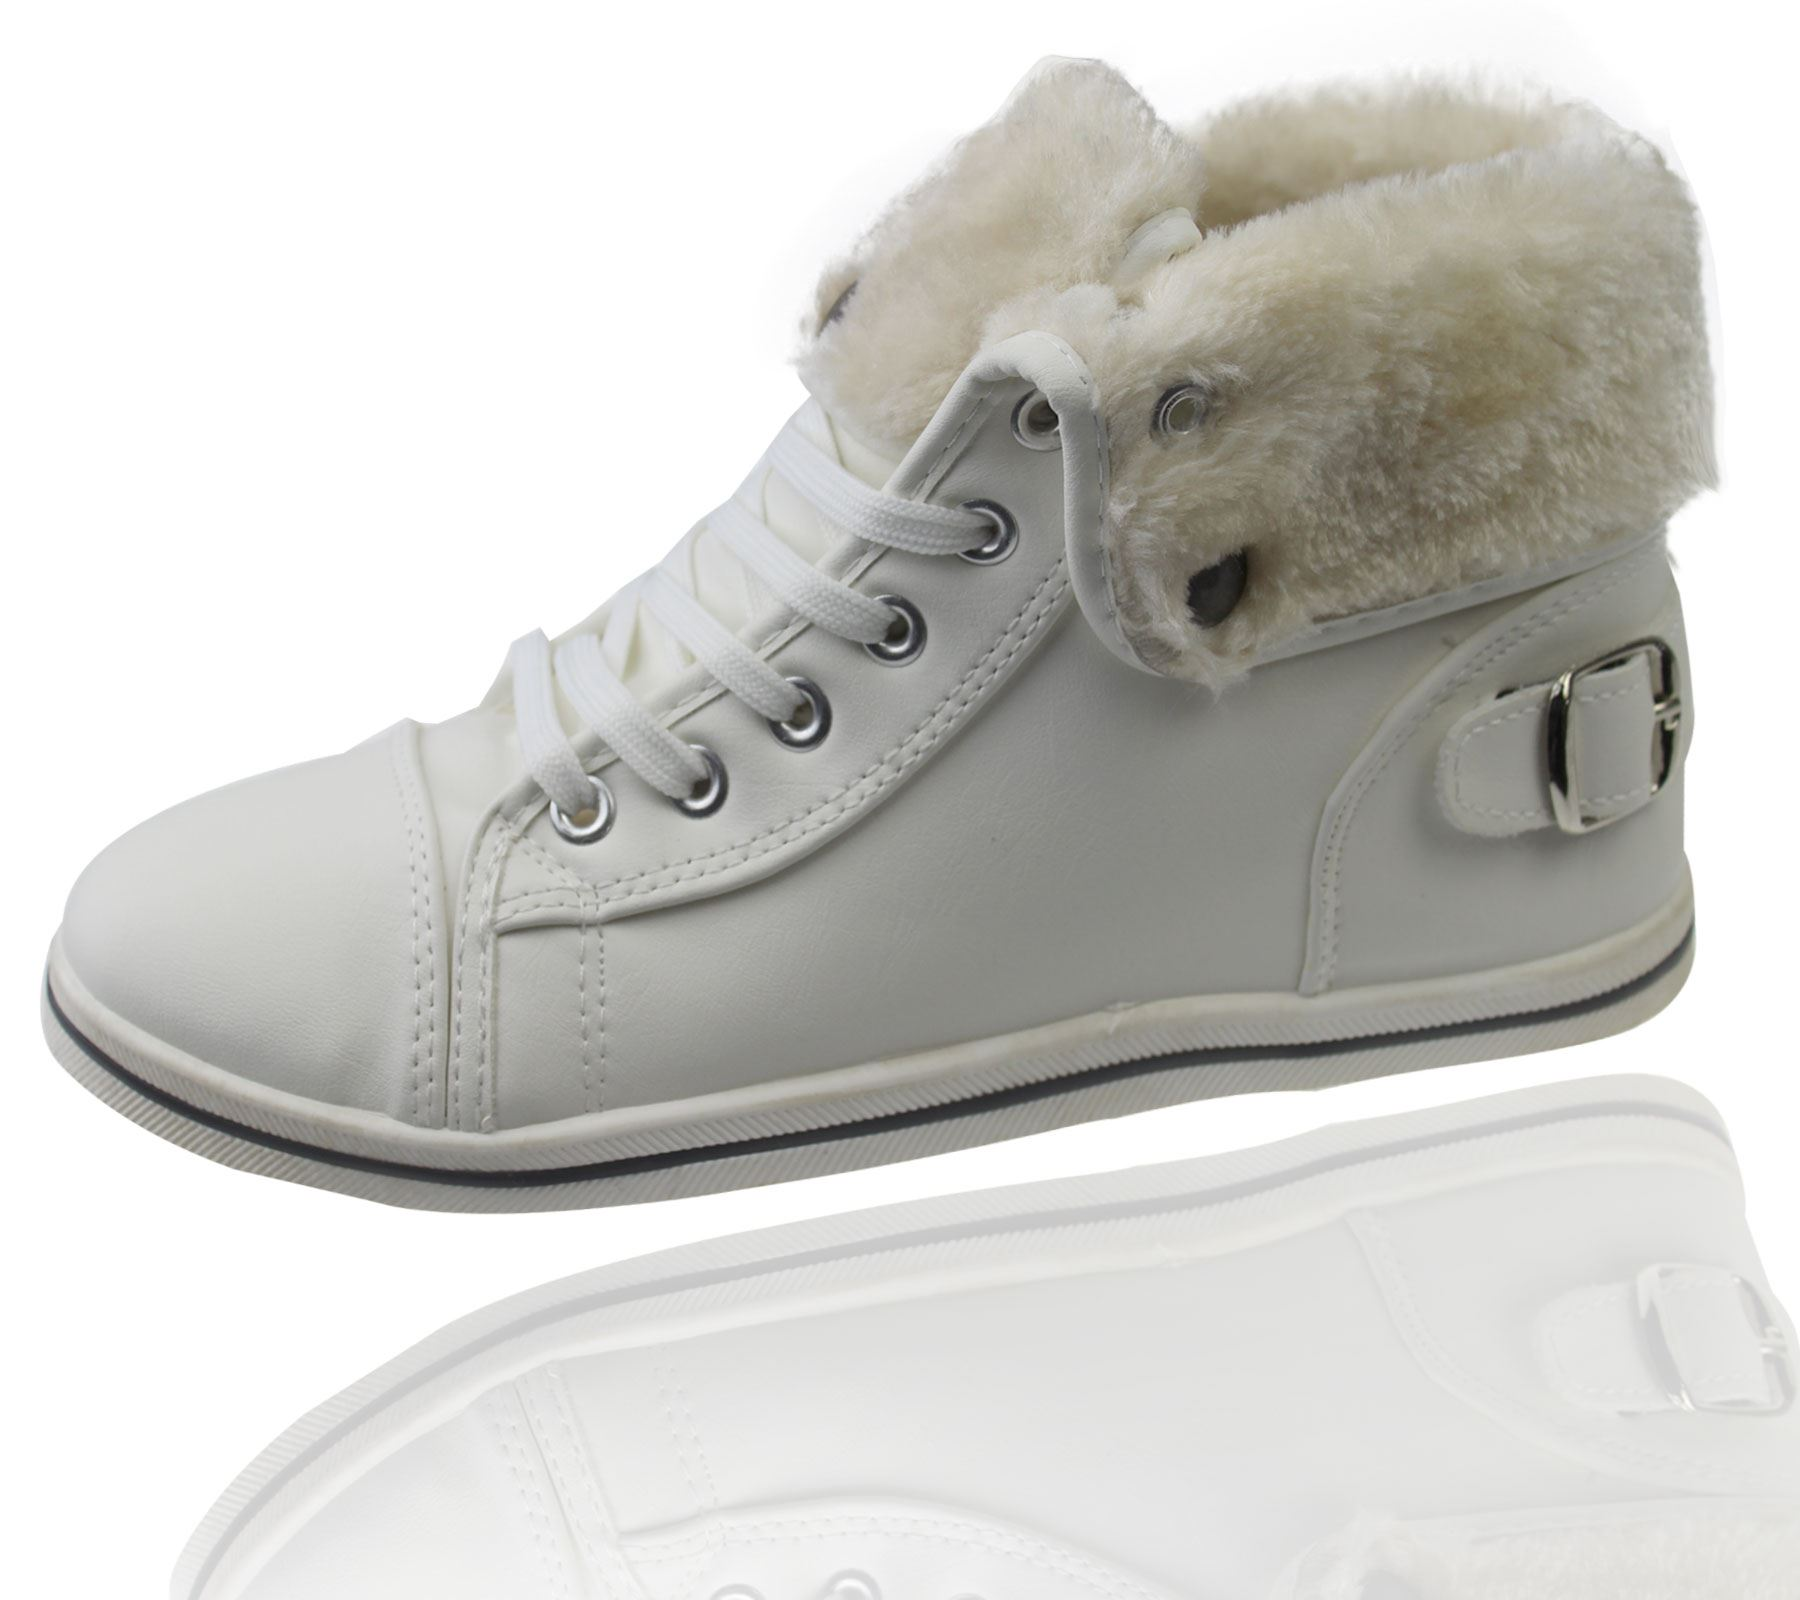 Girls-Boots-Womens-Warm-Lined-High-Top-Ankle-Trainer-Ladies-Winter-Shoes-Size miniatura 70